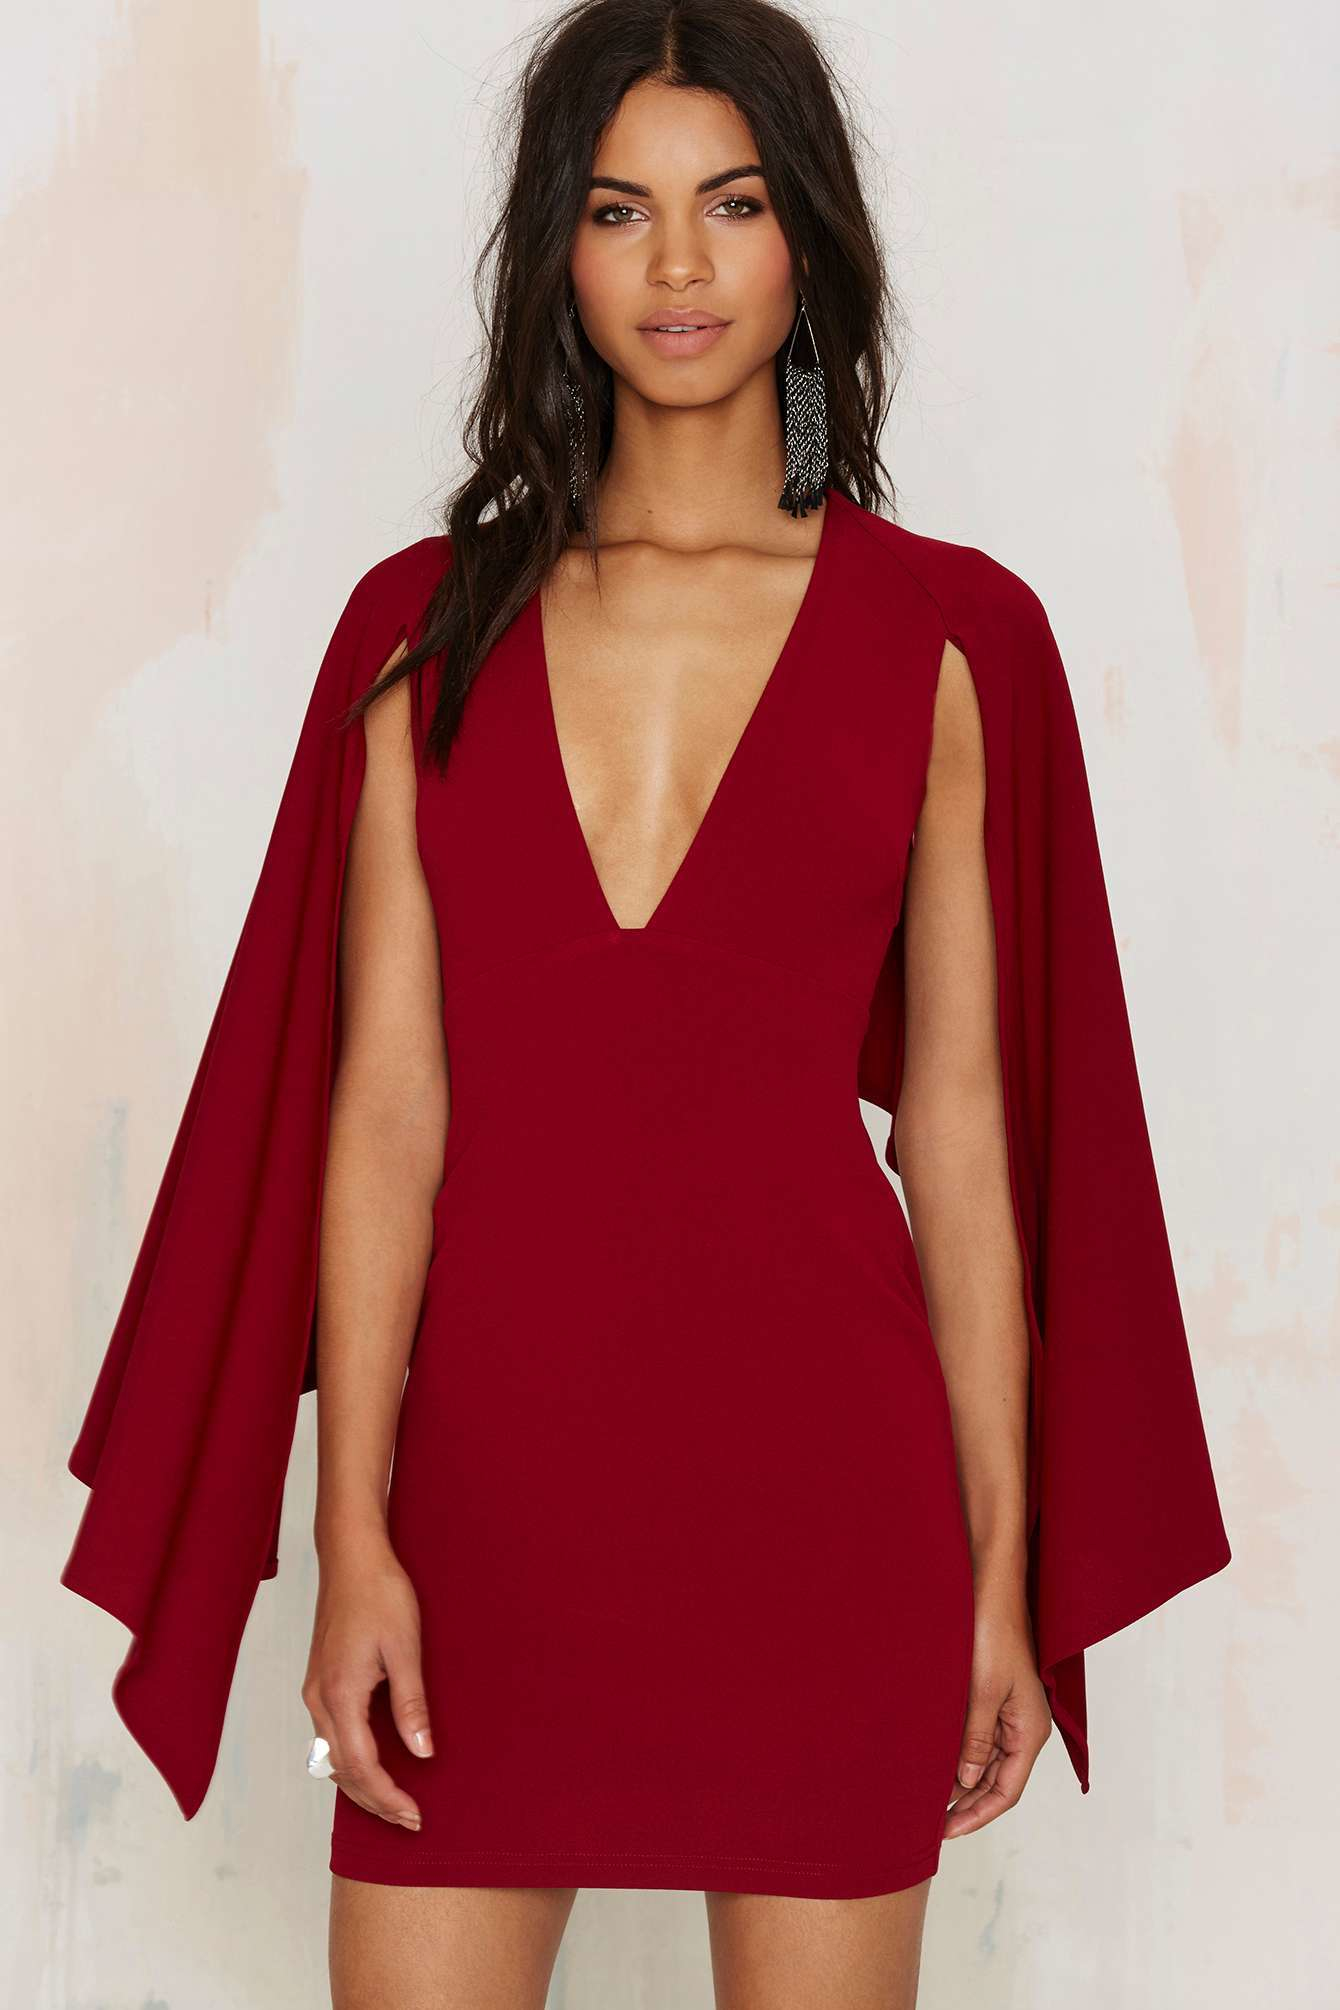 Lyst - Nasty Gal Kendra Plunging Cape Dress In Red-1351